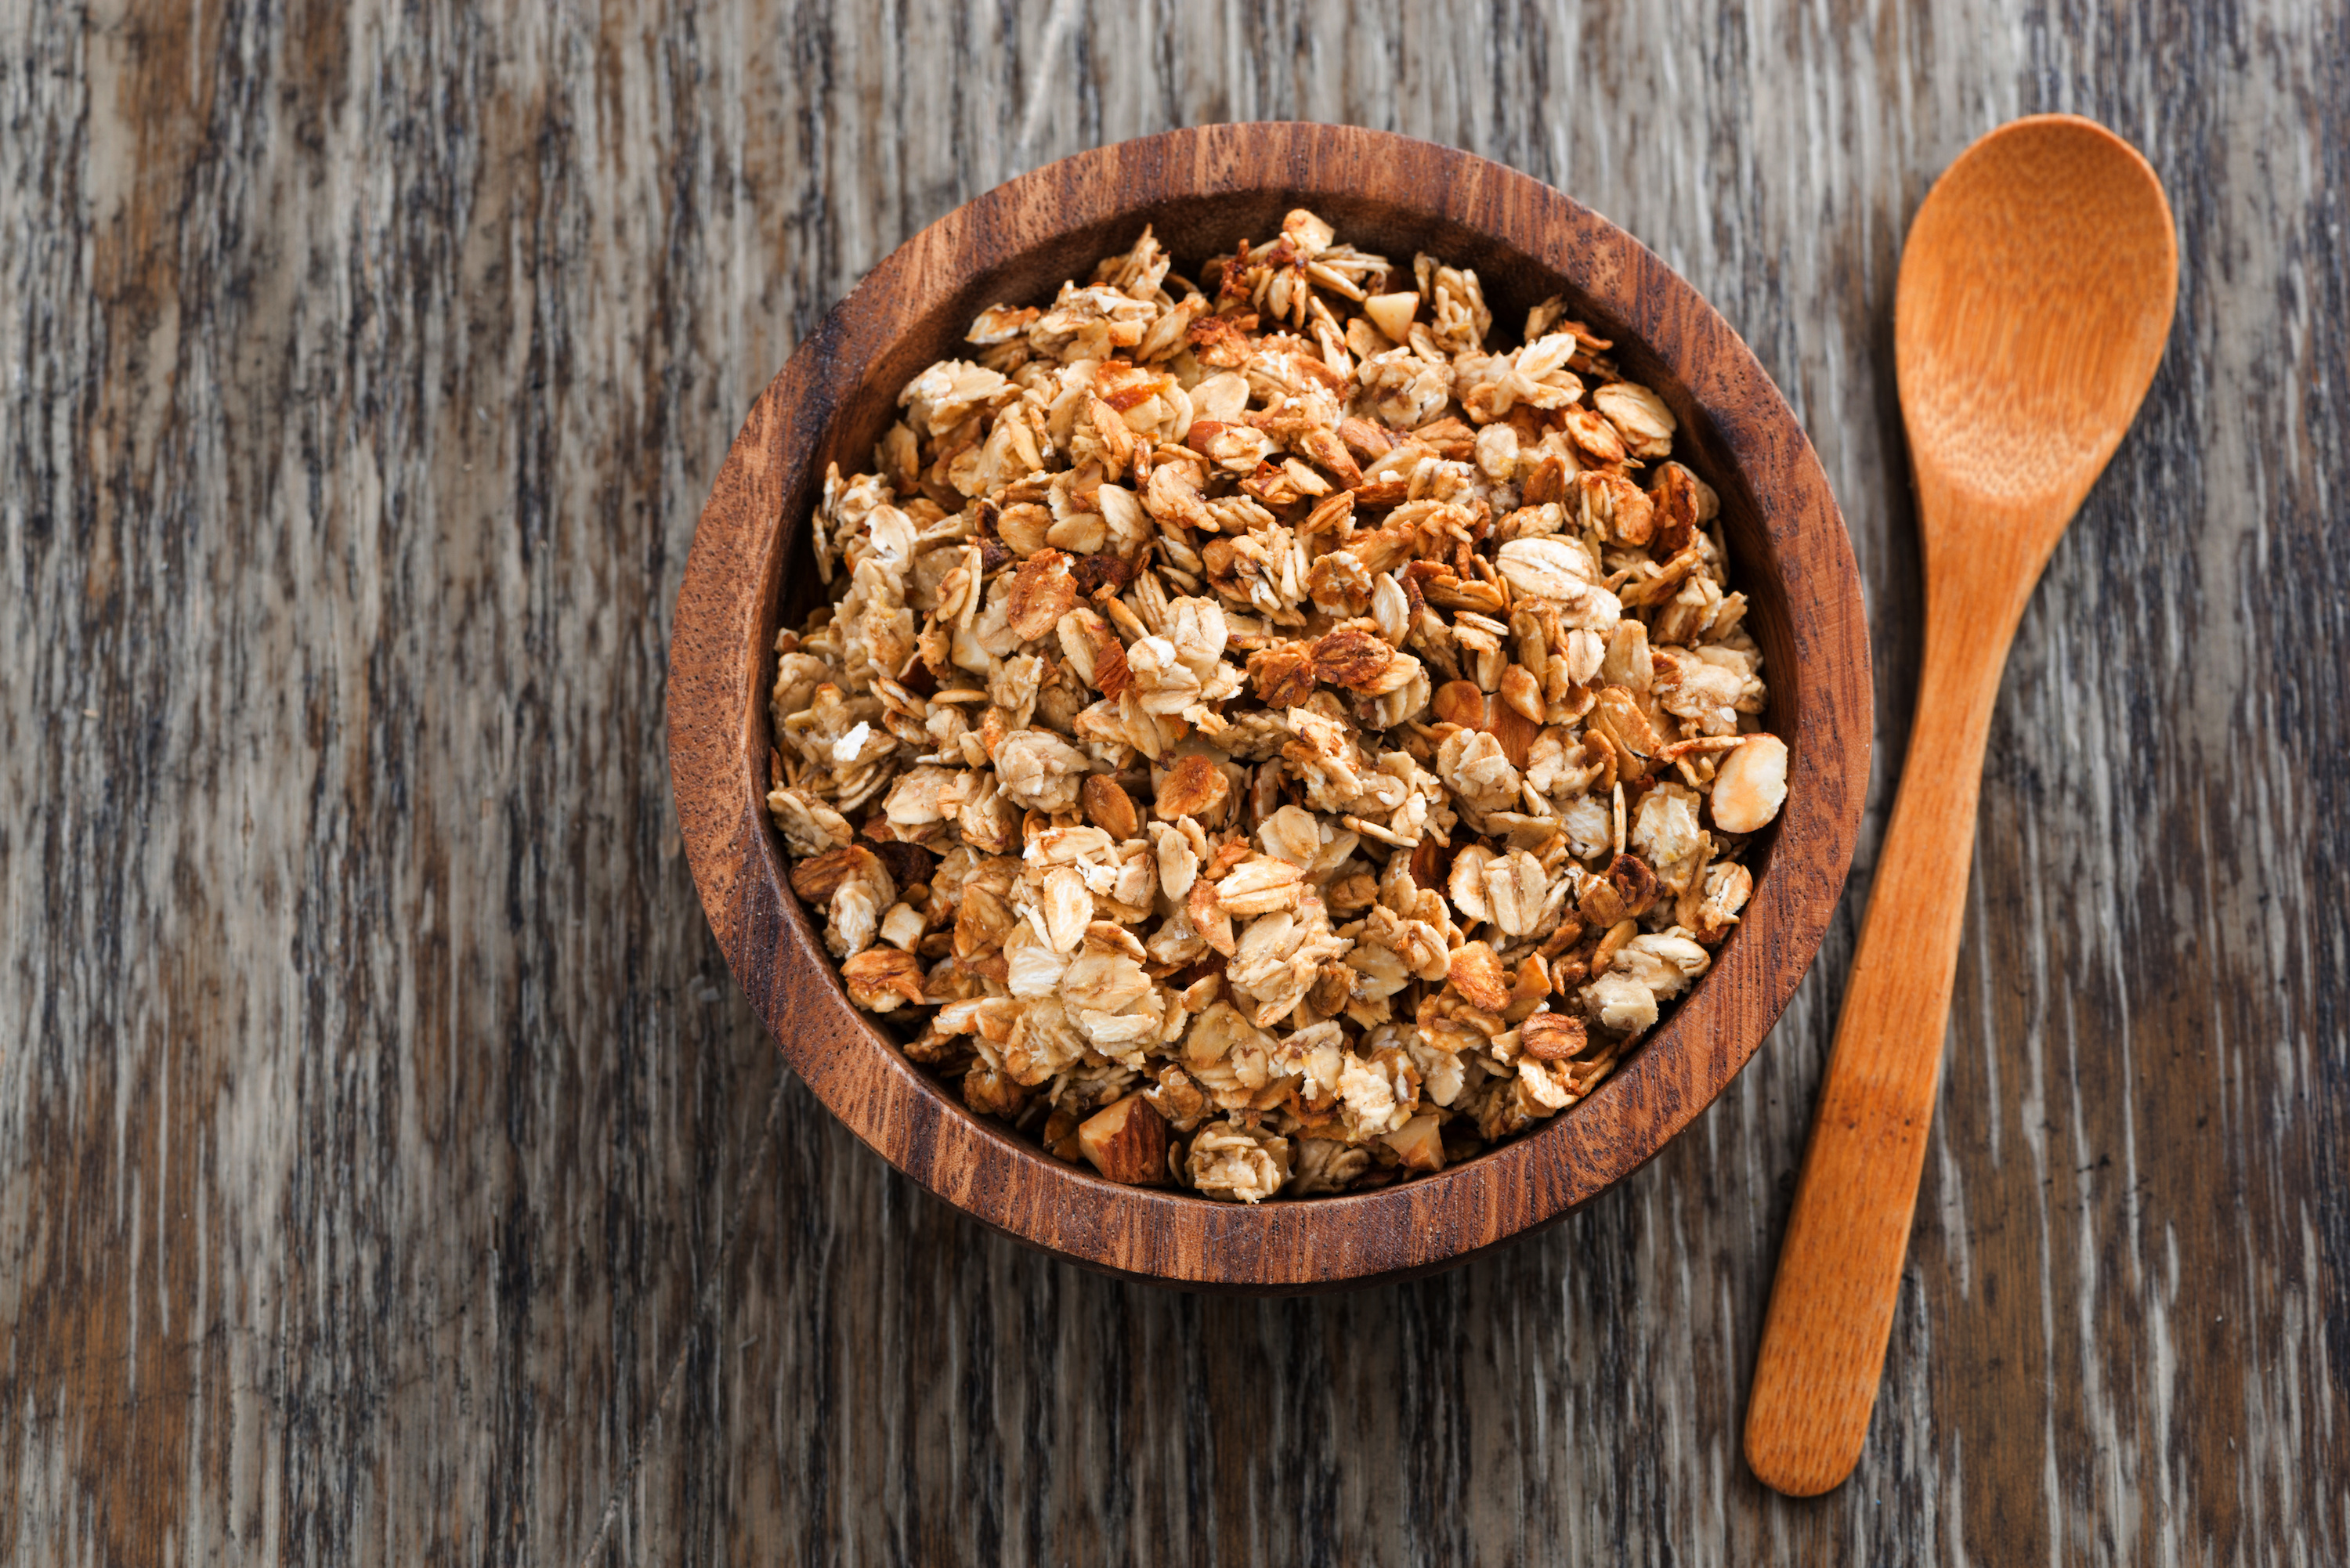 homemade granola in a wooden bowl and spoon, top view, close-up